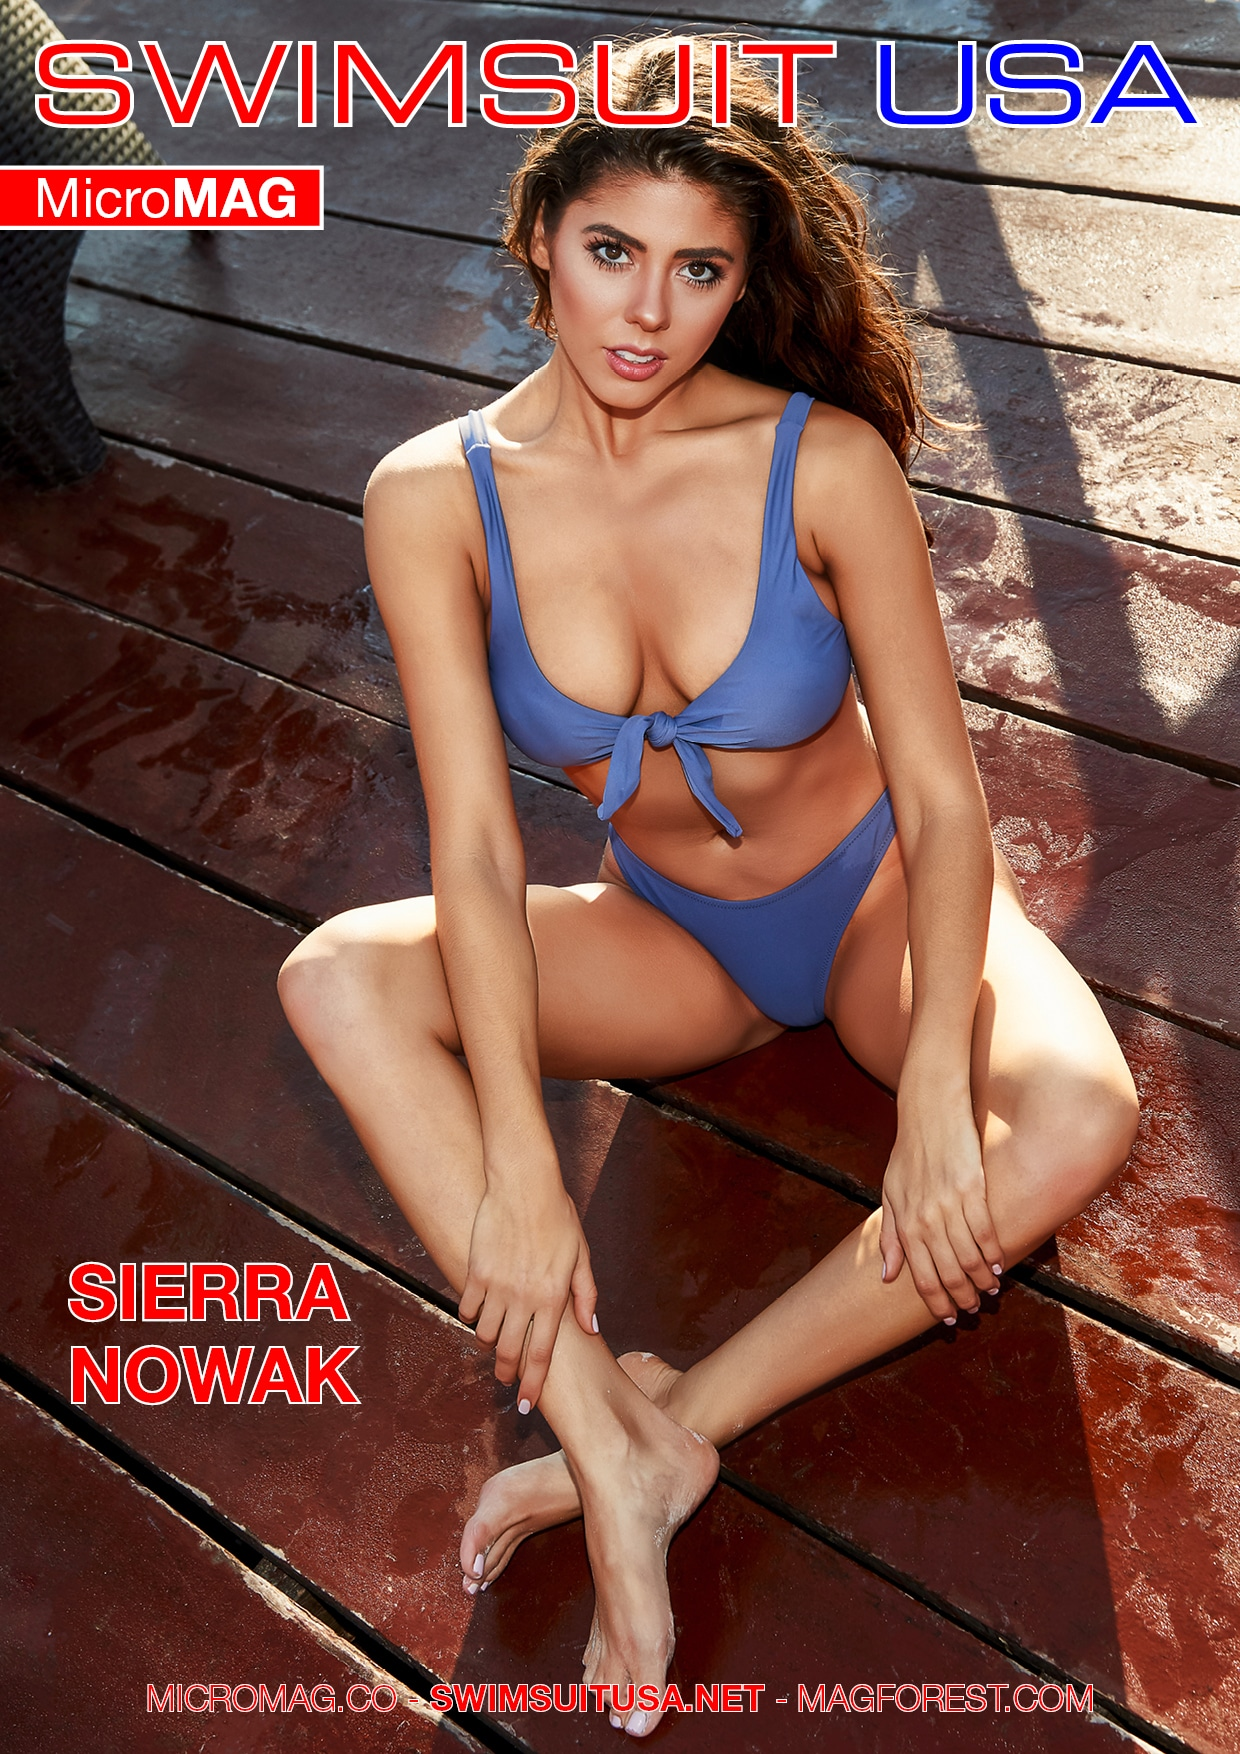 Swimsuit USA MicroMAG - Charlotte Cushing 8